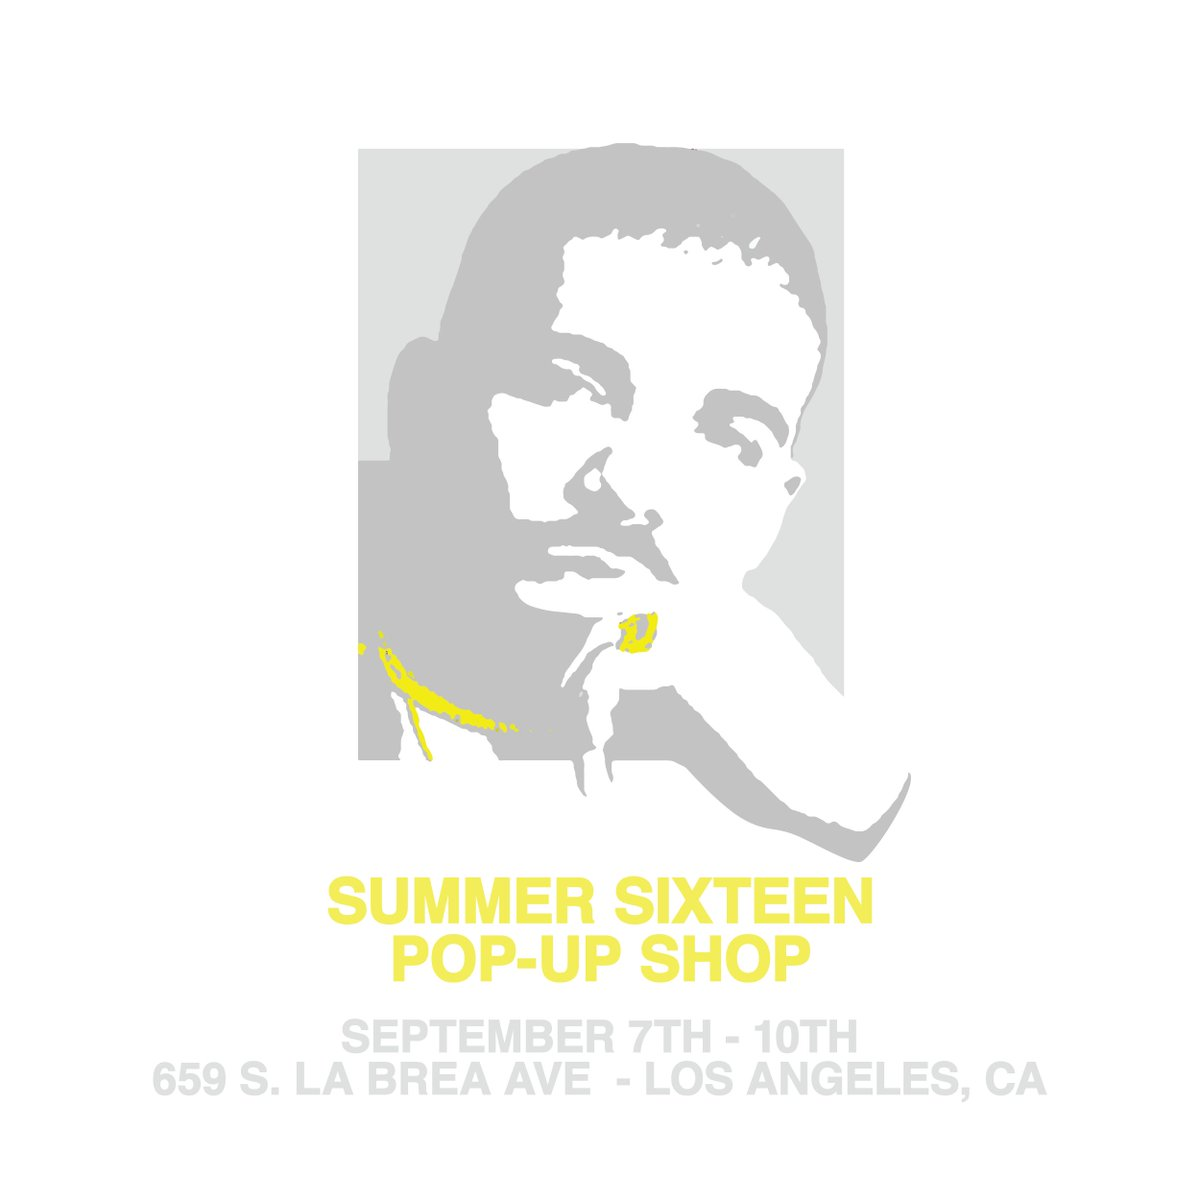 Featuring @Drake #SummerSixteen Tour Merchandise & Exclusive #LA Pop-Up #Revenge Merchandise. https://t.co/VxuYKc3urz